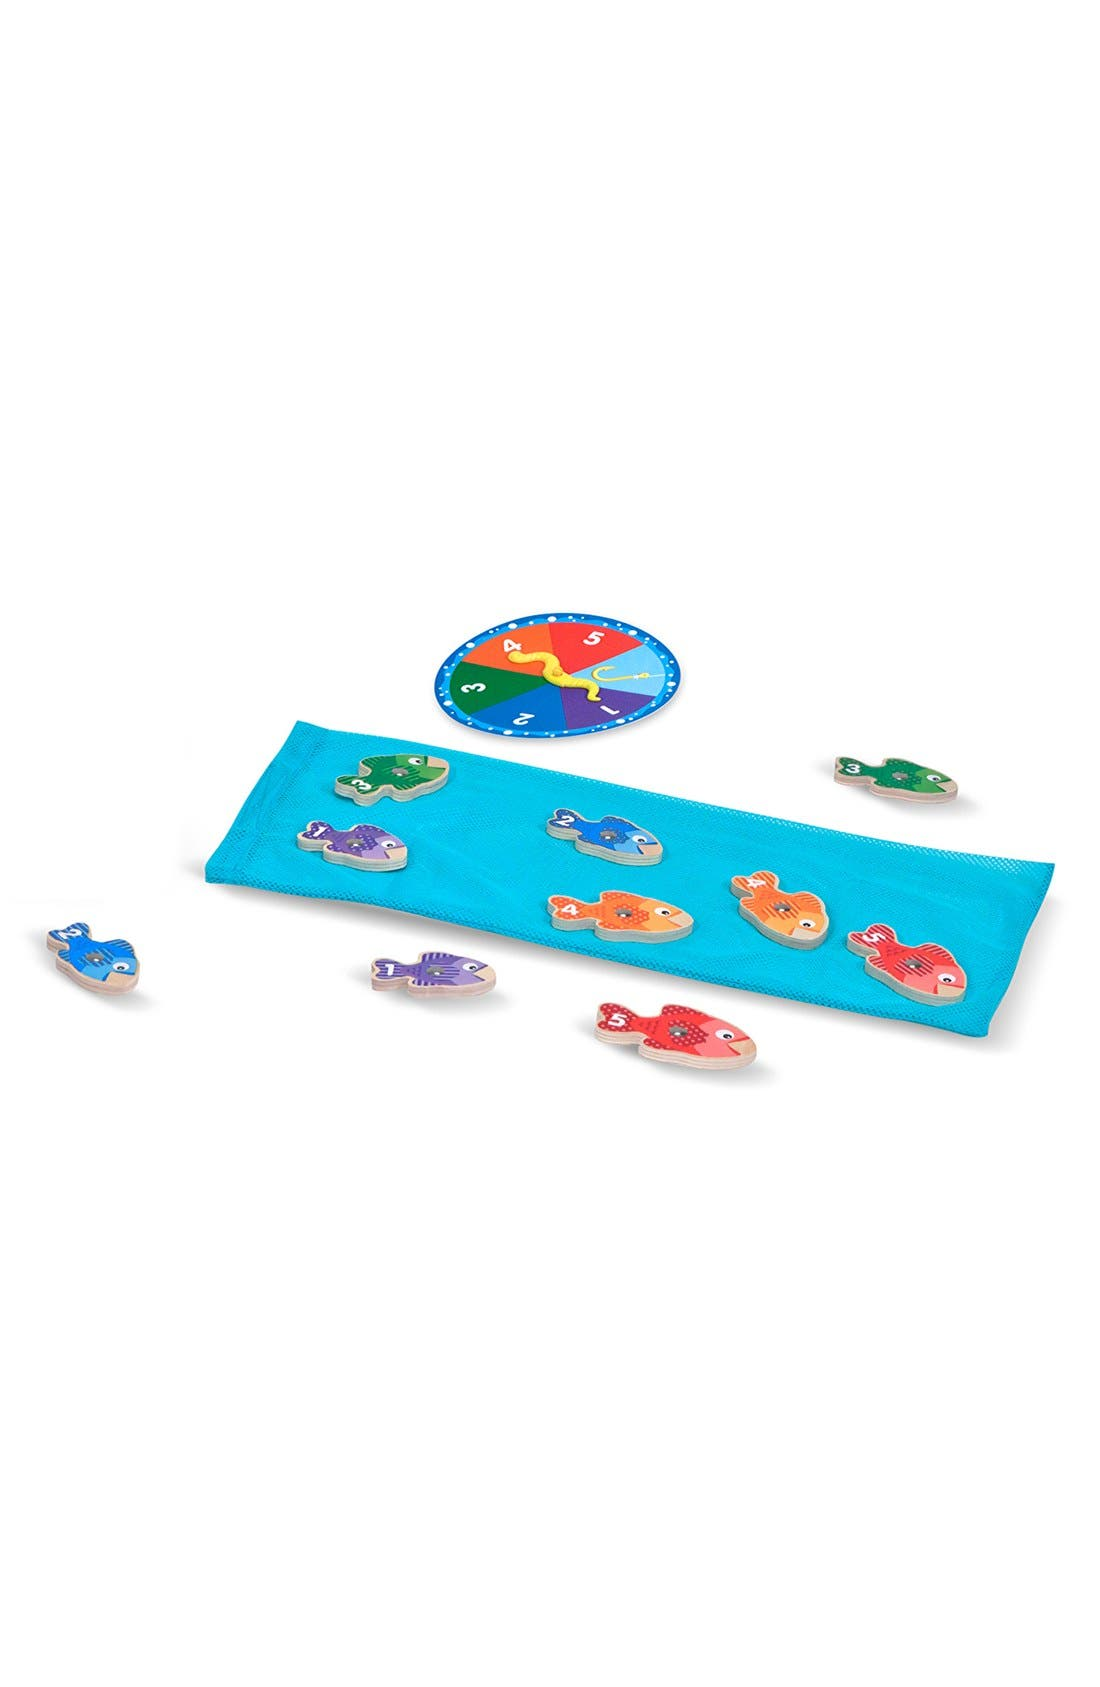 'Catch & Count' Fishing Game,                             Alternate thumbnail 4, color,                             Blue Multi